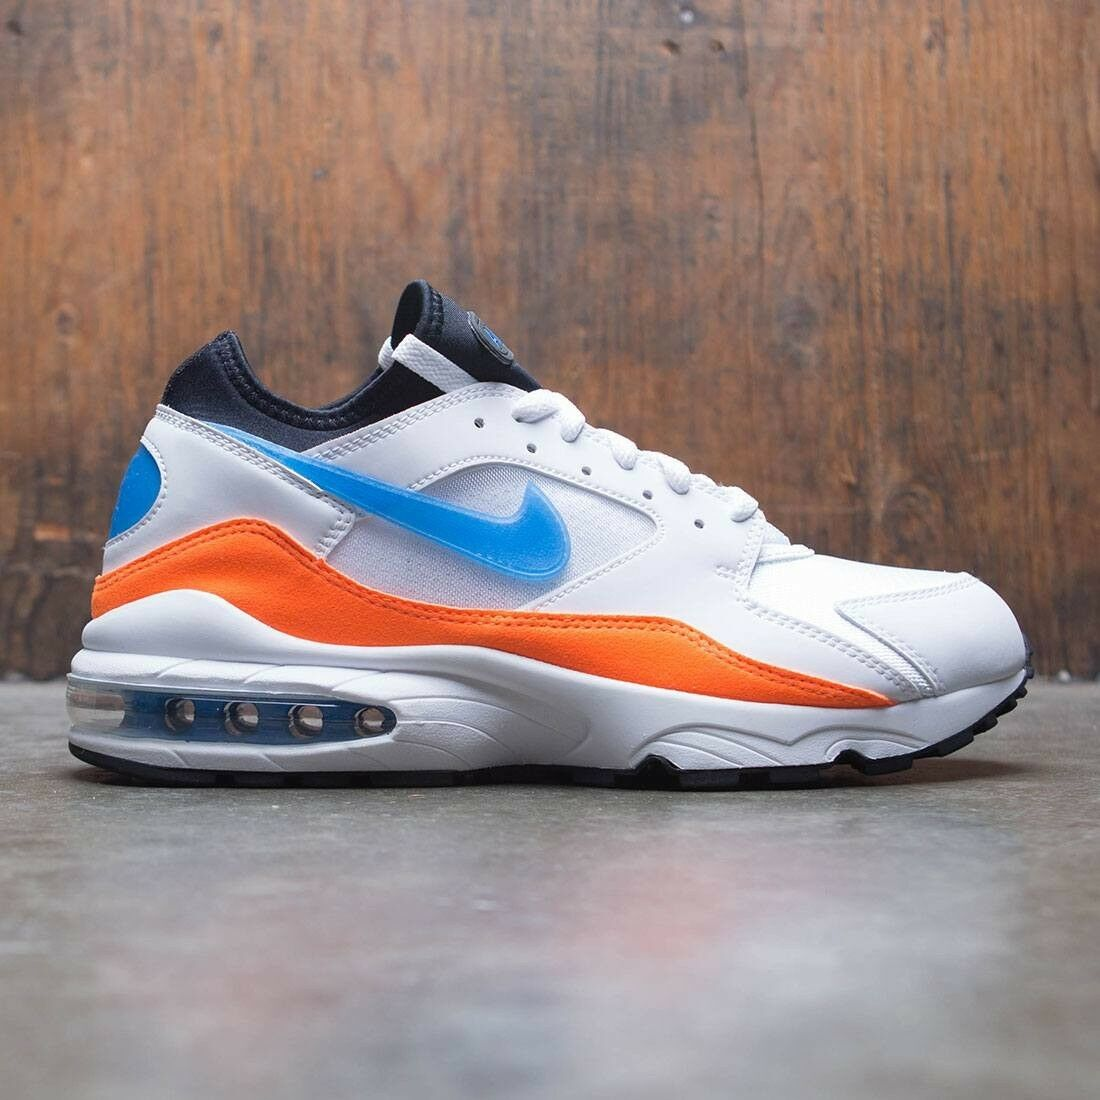 2018 Nike Air Max 93 Retro Nebula orange Size 11.5. 306551-104 1 90 95 97